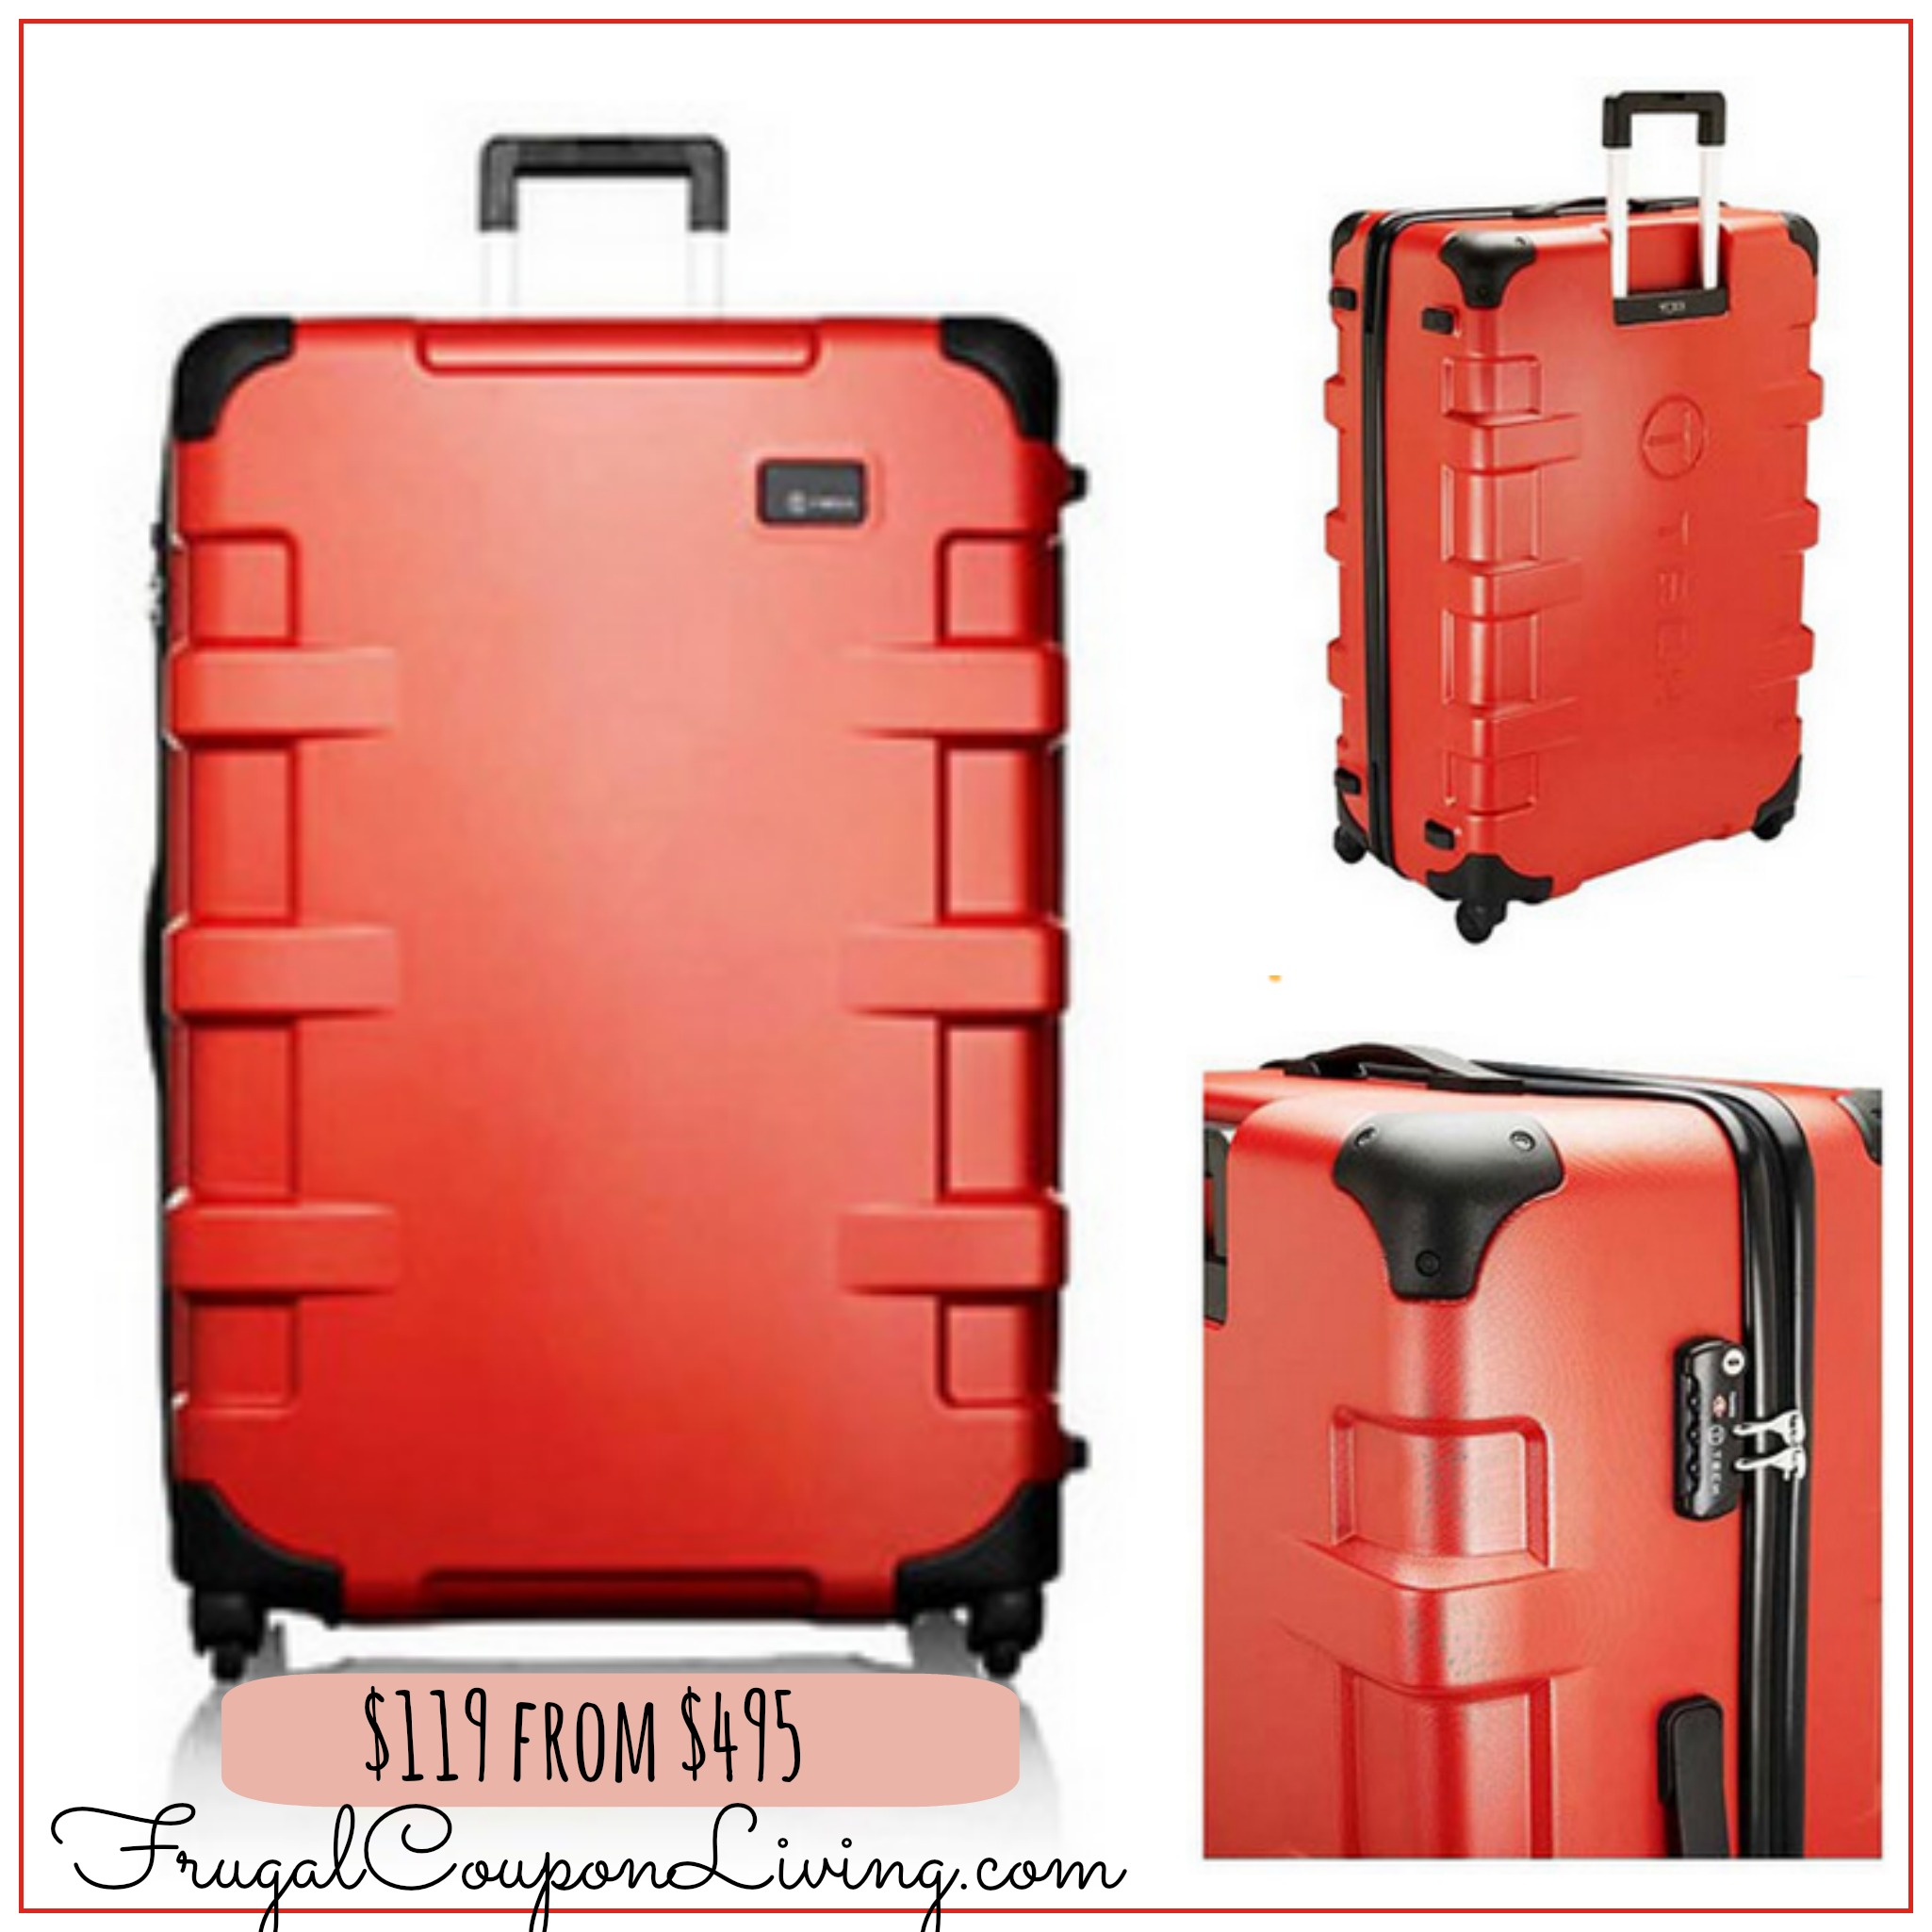 Hardcases Suitcase Sale - Tumi Cases for $119 from $495